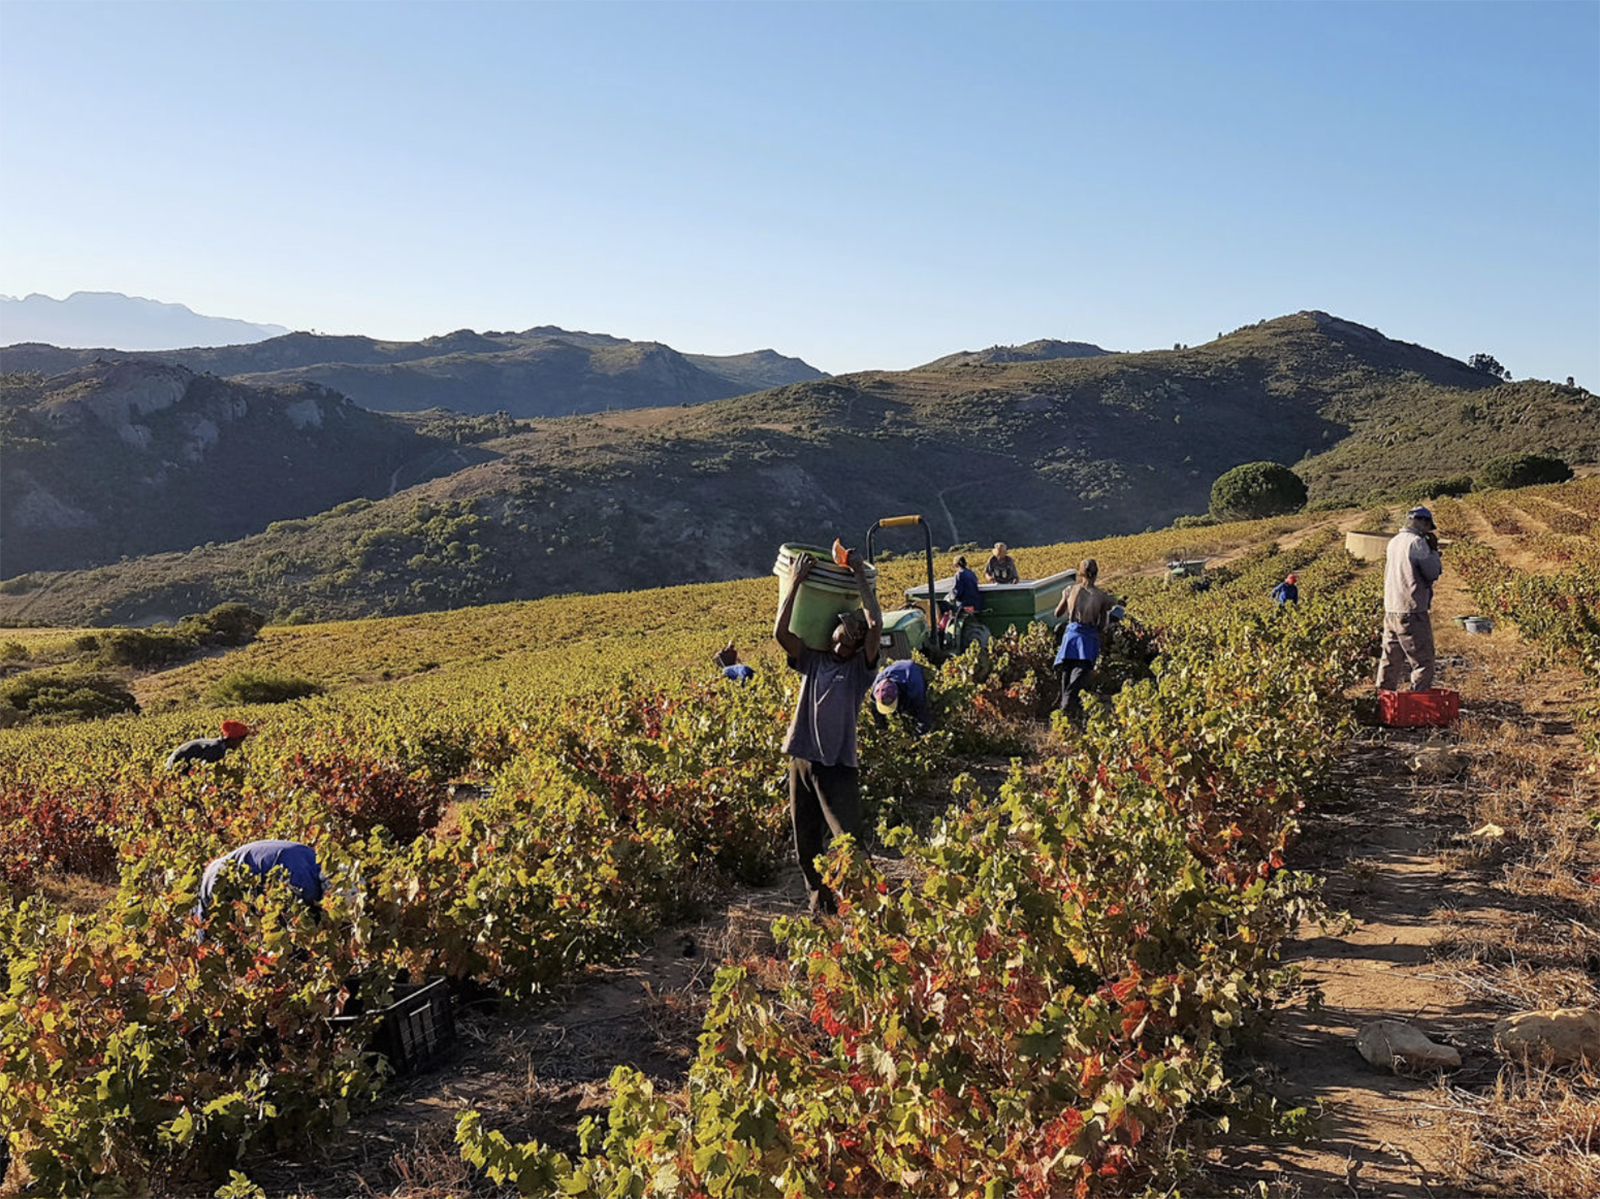 Workers harvest grapes at Babylon's Peak in South Africa